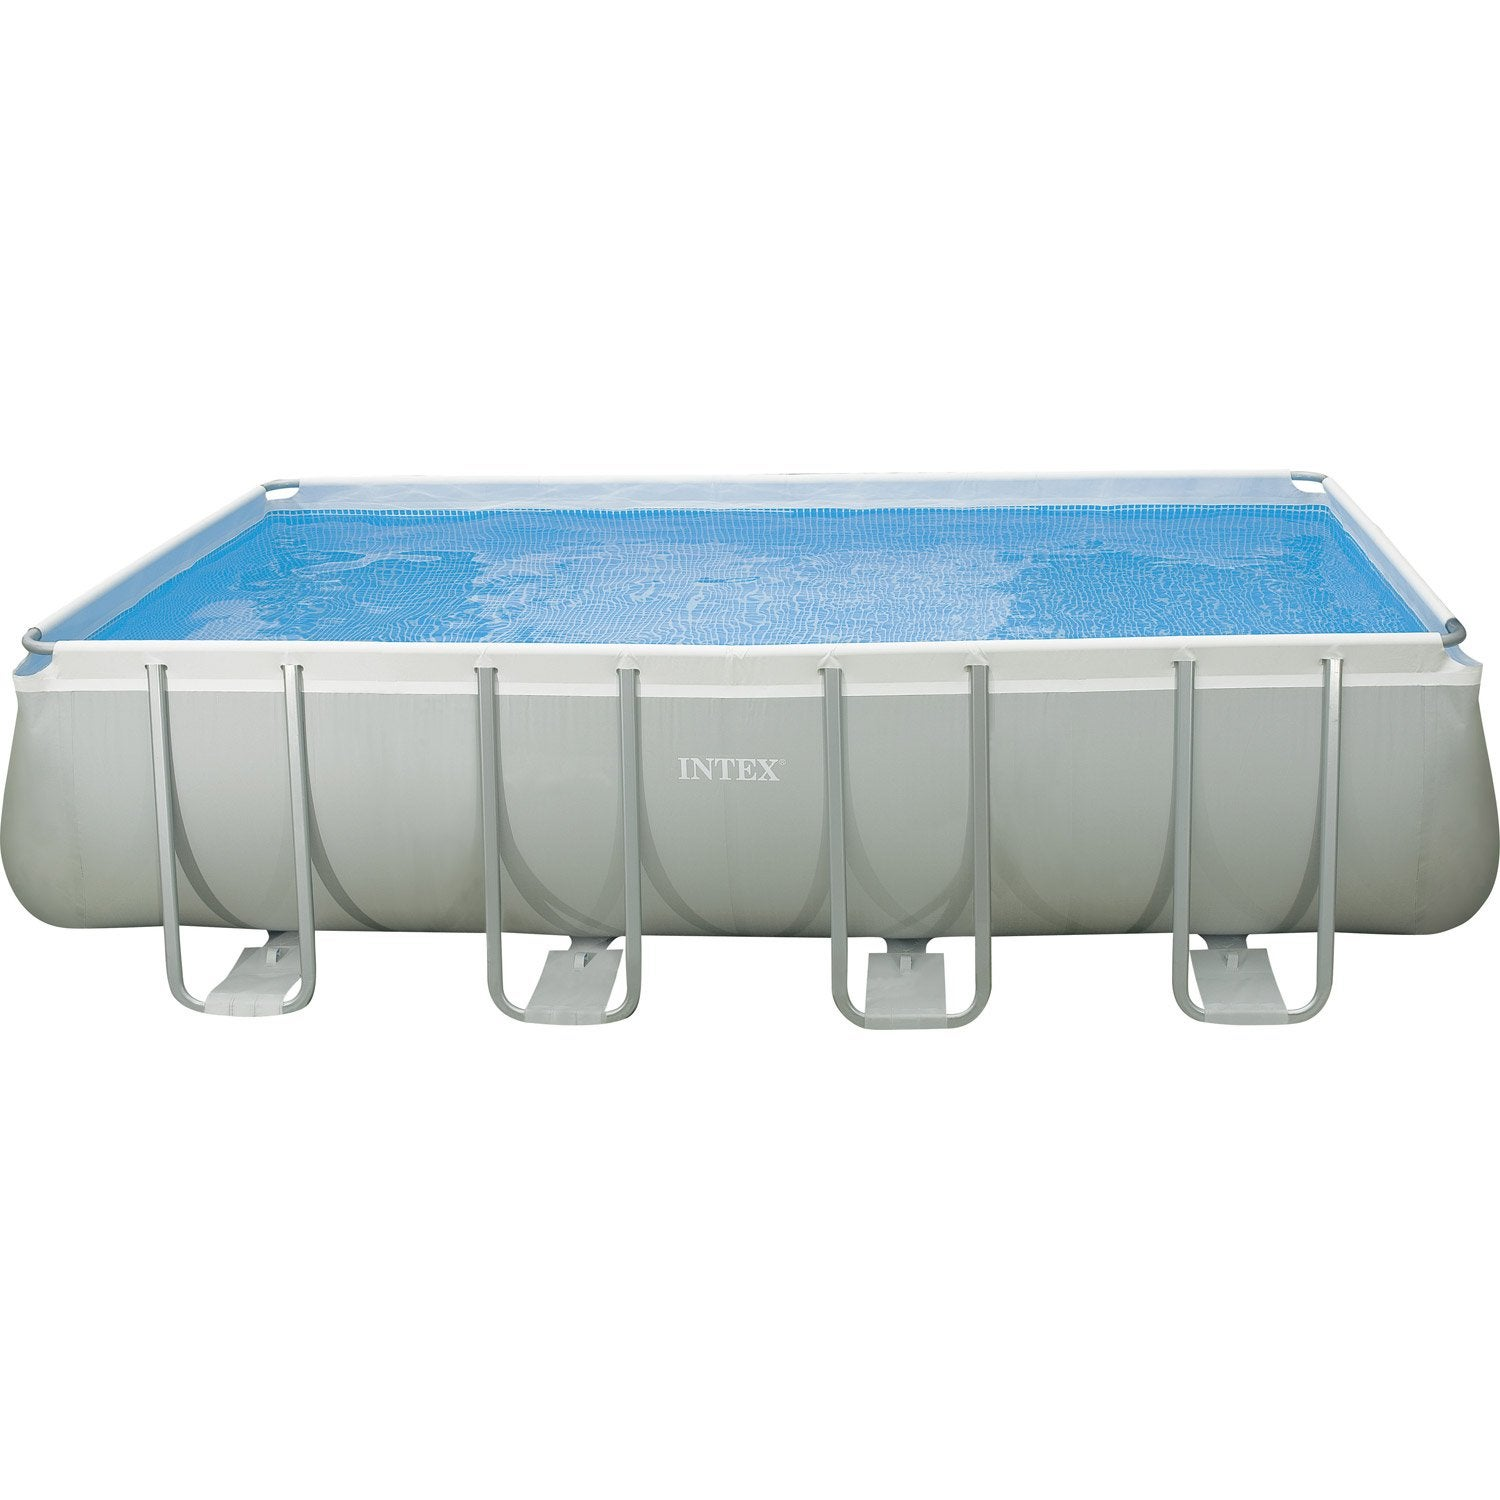 Piscine hors sol autoportante tubulaire intex l x l for Piscine tubulaire hauteur 1 m